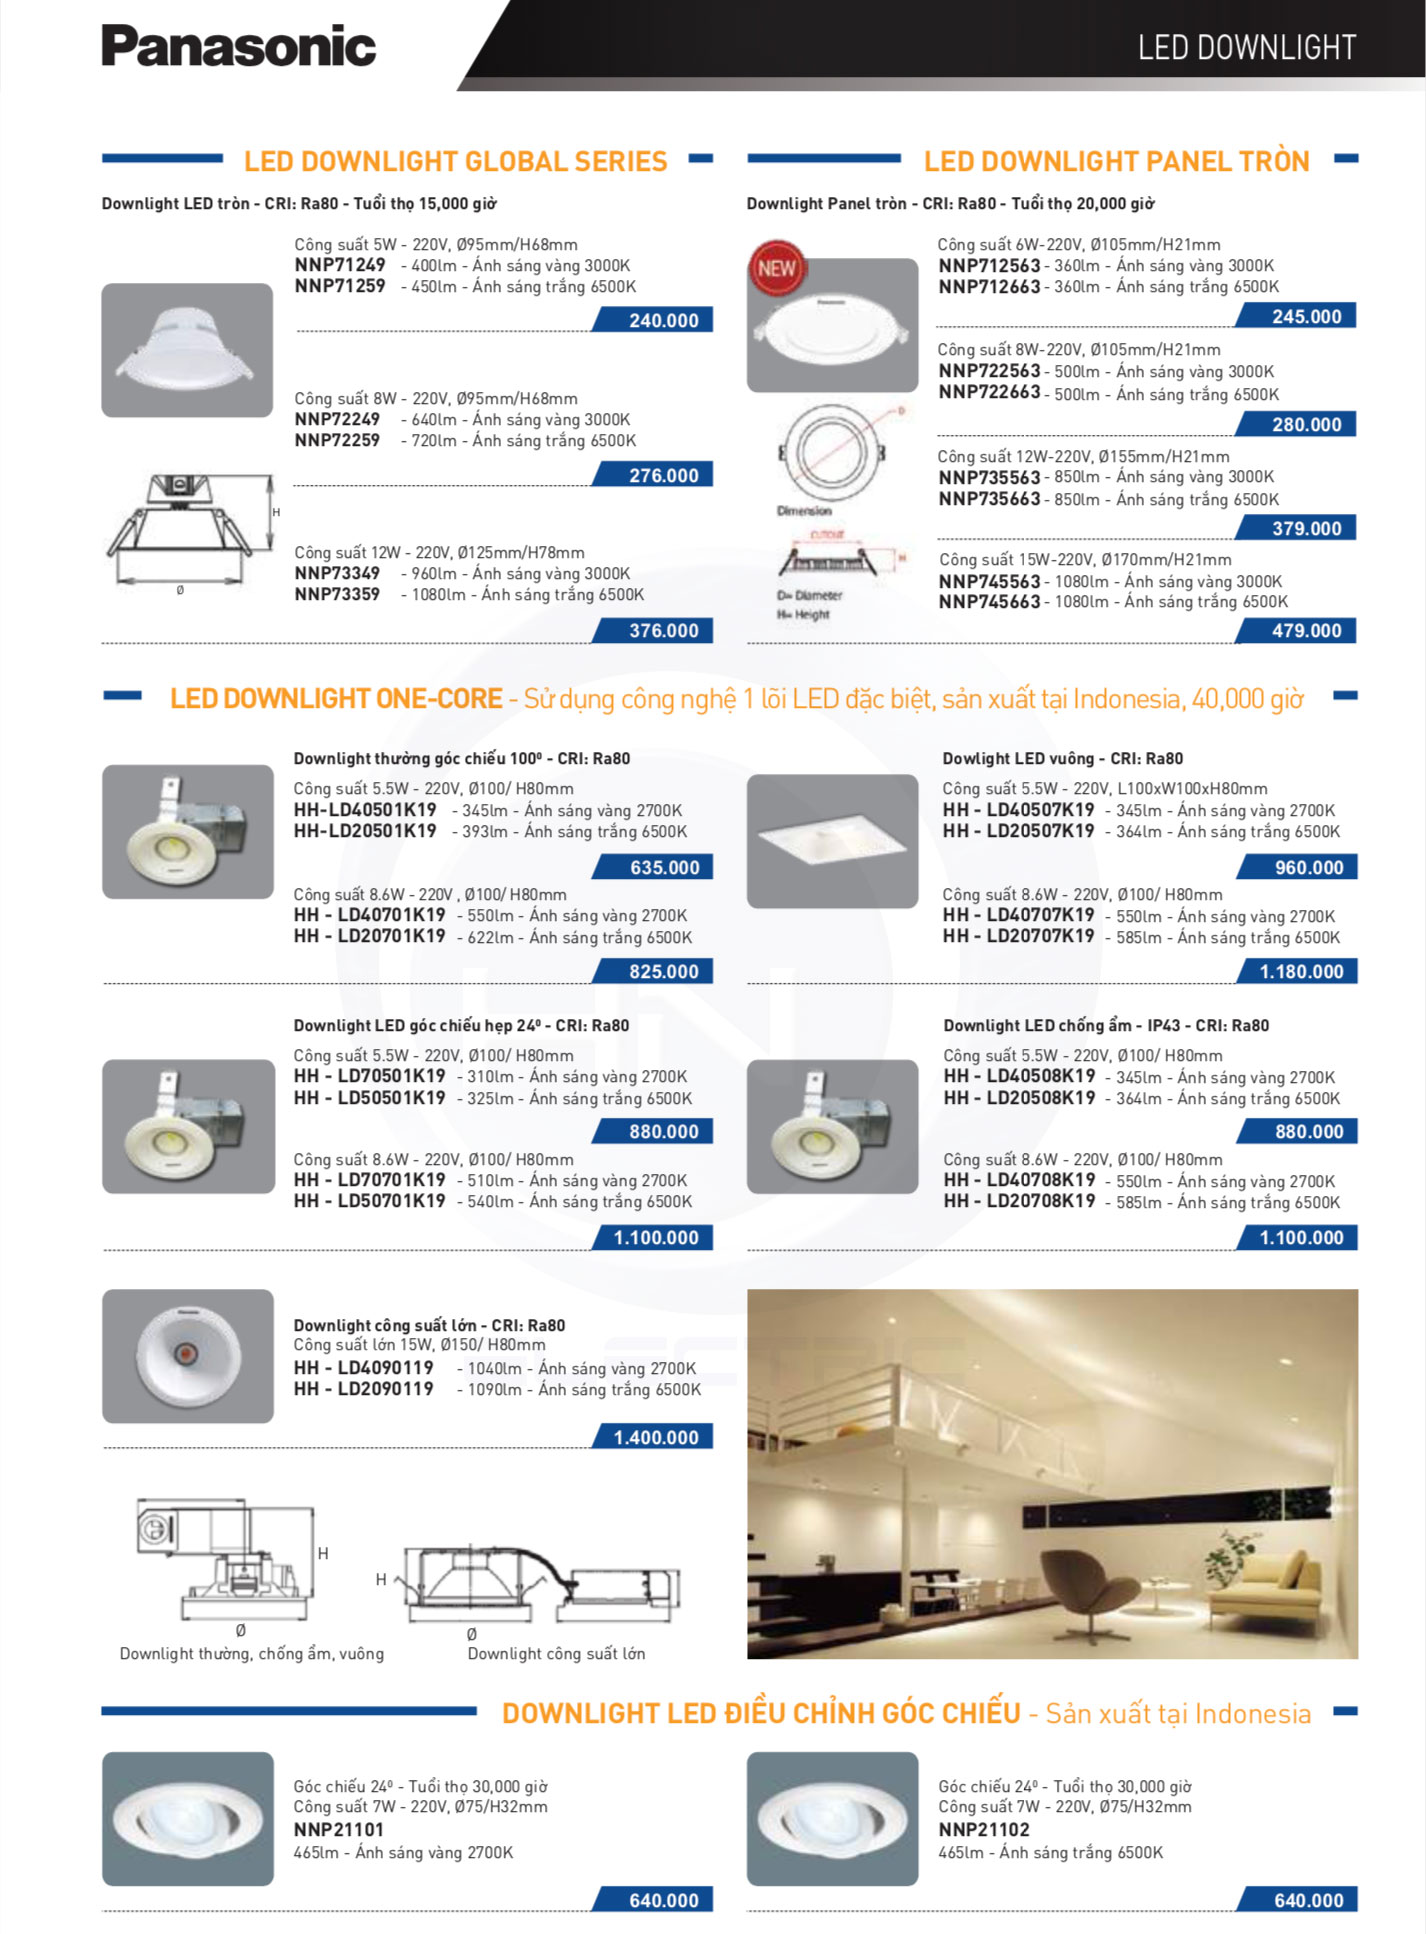 Downlight-Panasonic-forweb